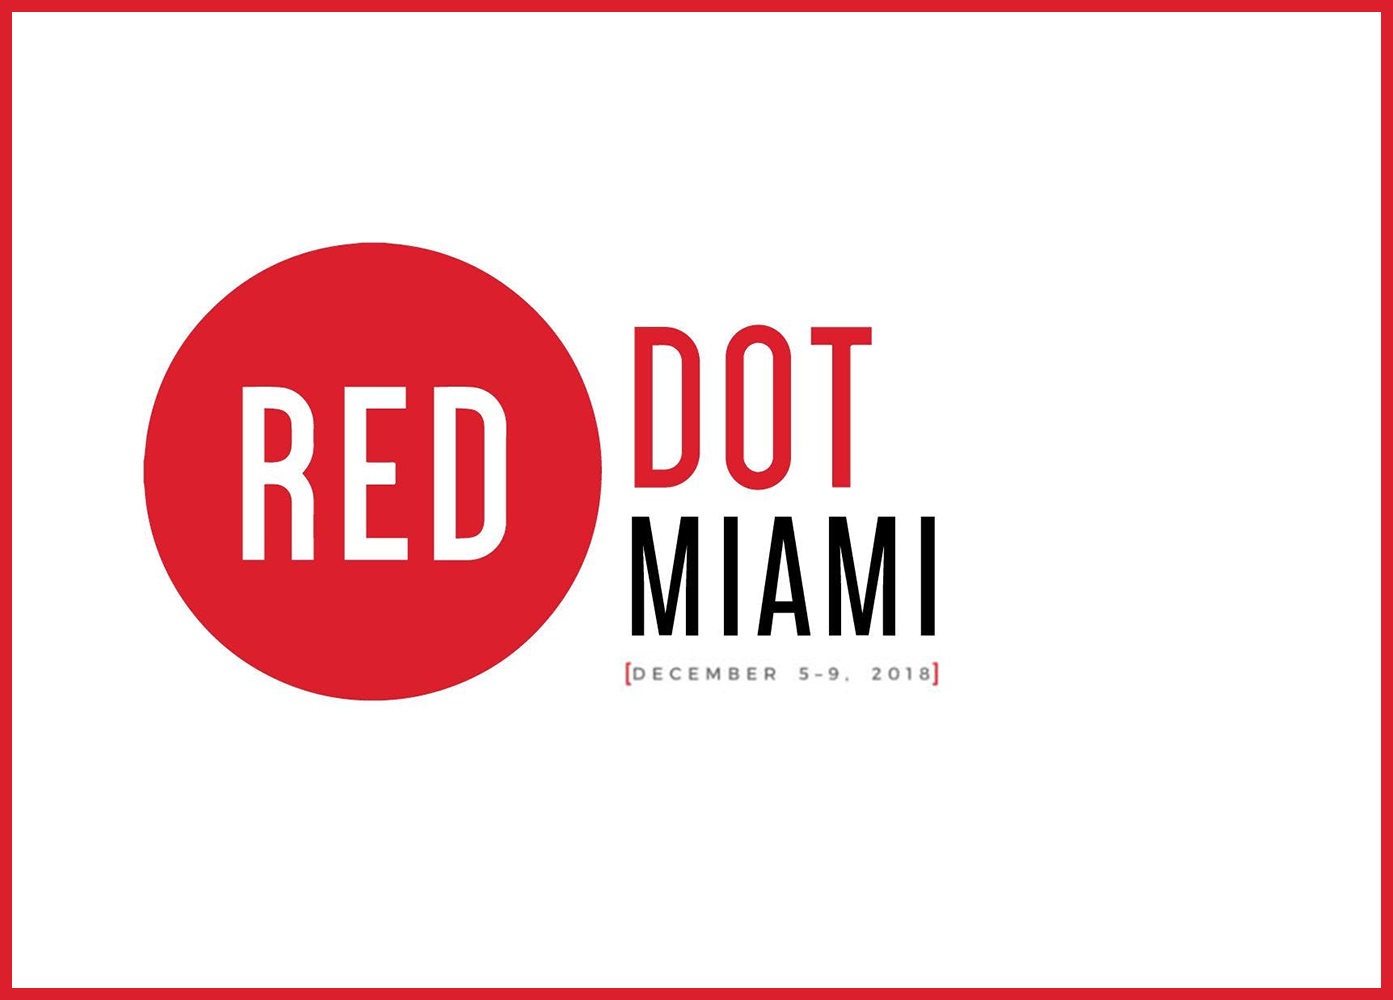 RED DOT MIAMI 2018 DEC 5-9 - Discover Red Dot Miami, a contemporary art show in the heart of Miami featuring an international slate of galleries. The show features galleries showcasing leading contemporary artists, and includes Art Labs, events, and informative Art Talks focused on collecting. Now in its 13th year, the event is an unforgettable five days of cutting-edge art, entertainment, and special events.